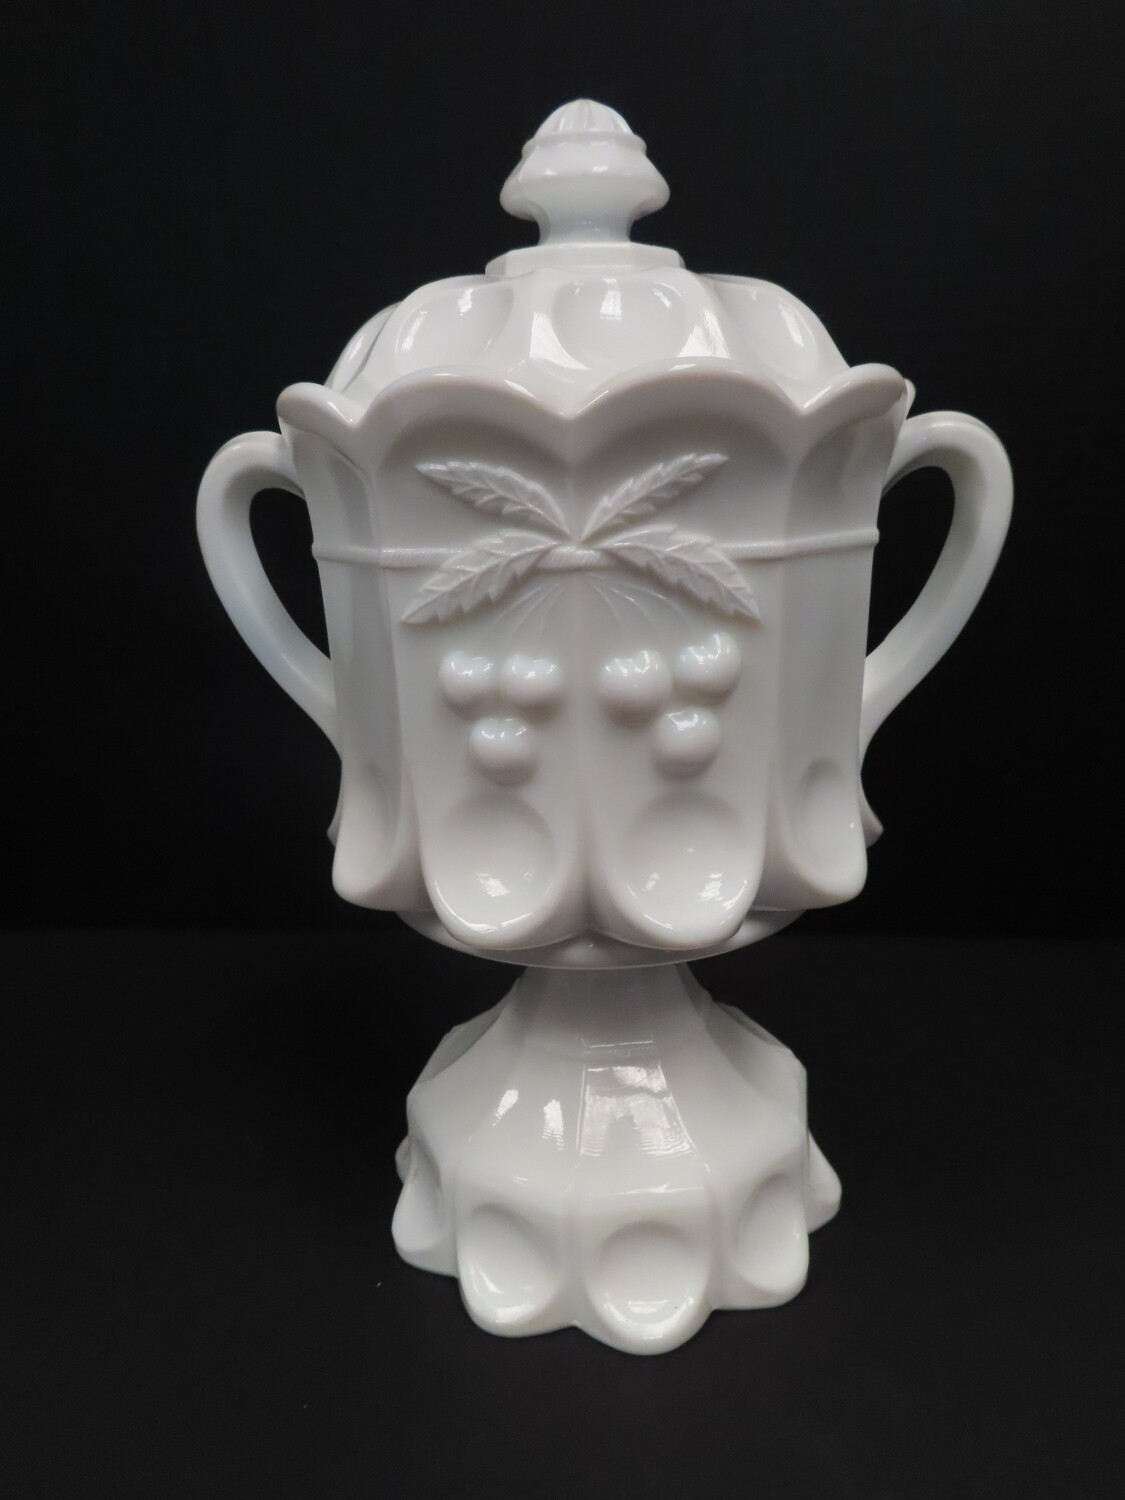 Cherries and Cable Milk Glass Cookie Jar